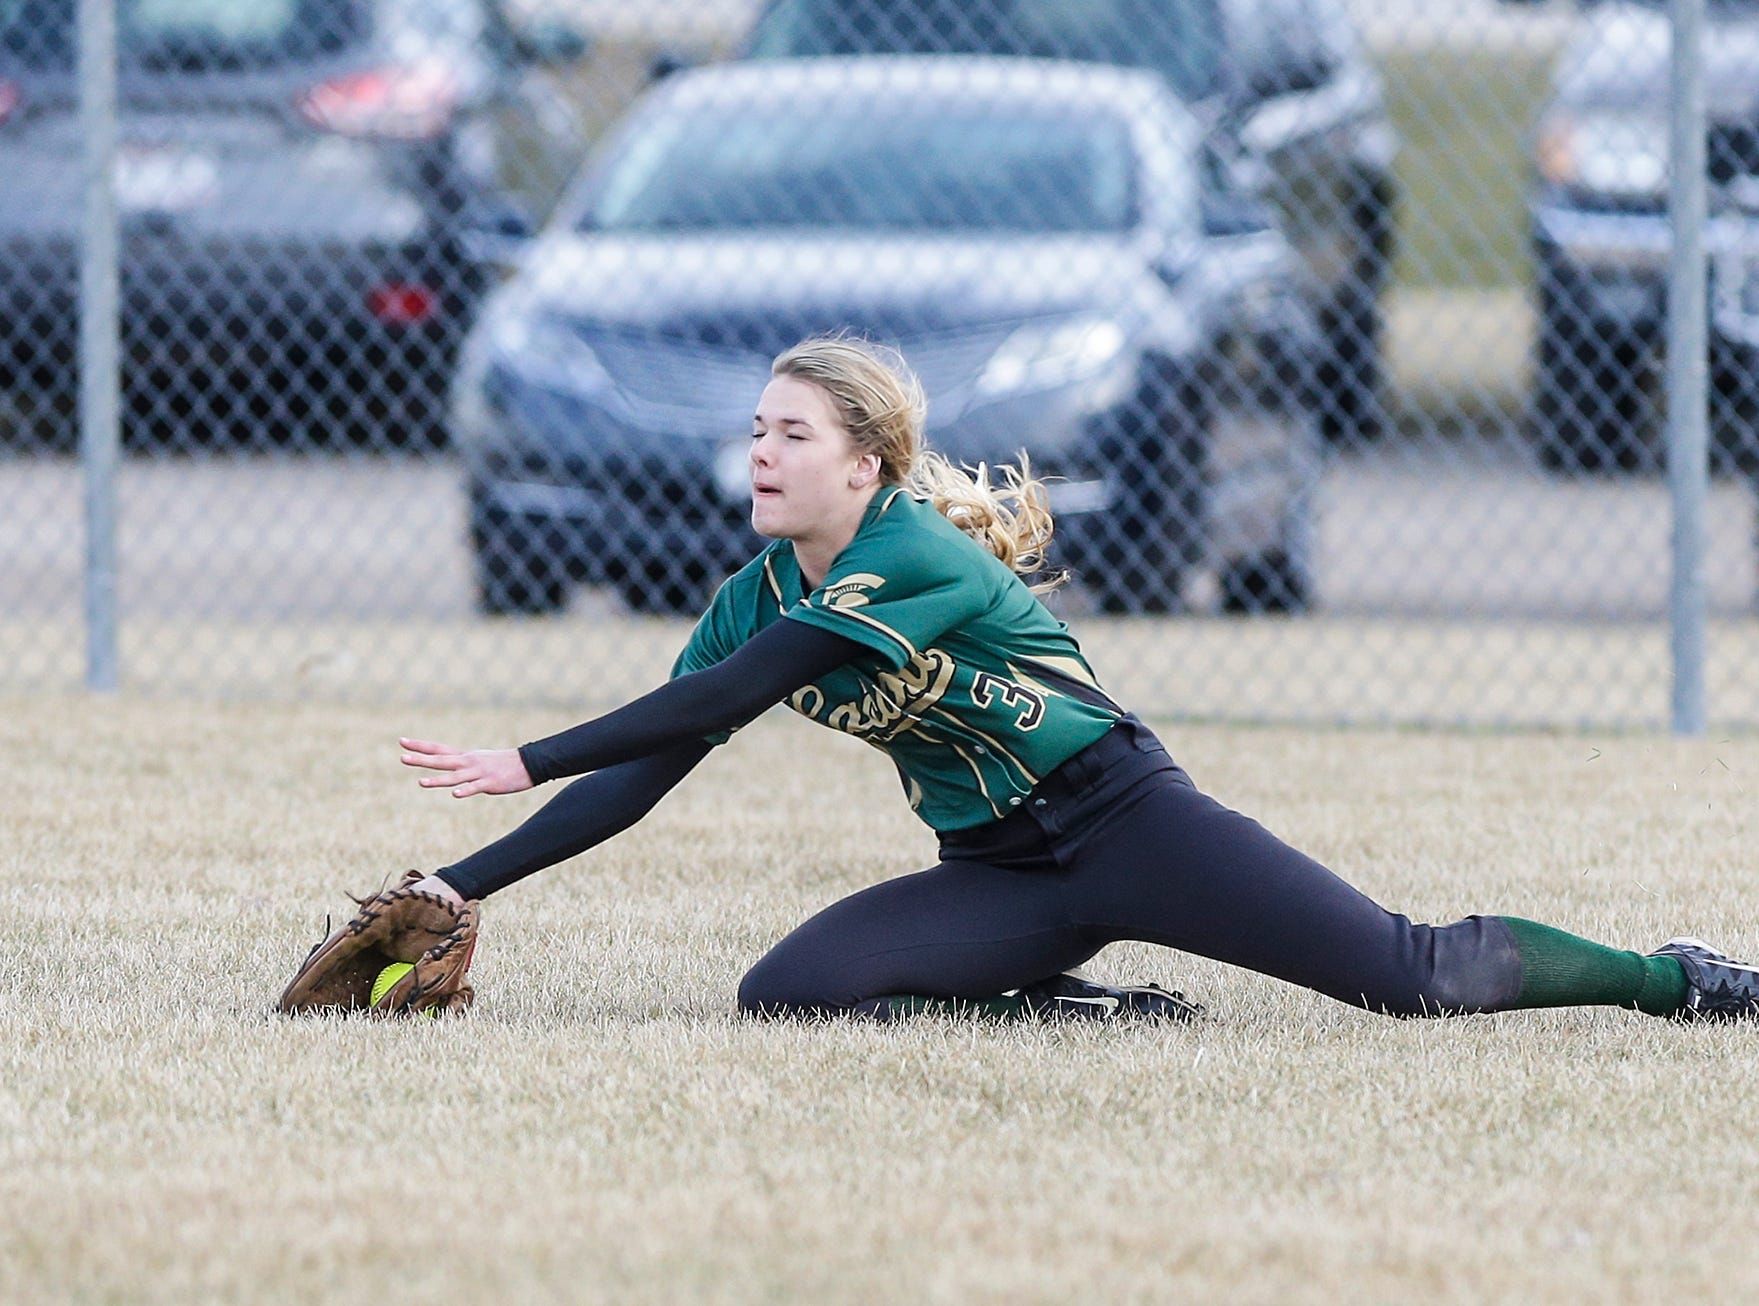 Laconia High School softball's Hailey Bartz attempts a diving catch against Winnebago Lutheran Academy but can't hold onto the ball April 9, 2019 during their game in Fond du Lac, Wis. Laconia won the game 25-9. Doug Raflik/USA TODAY NETWORK-Wisconsin